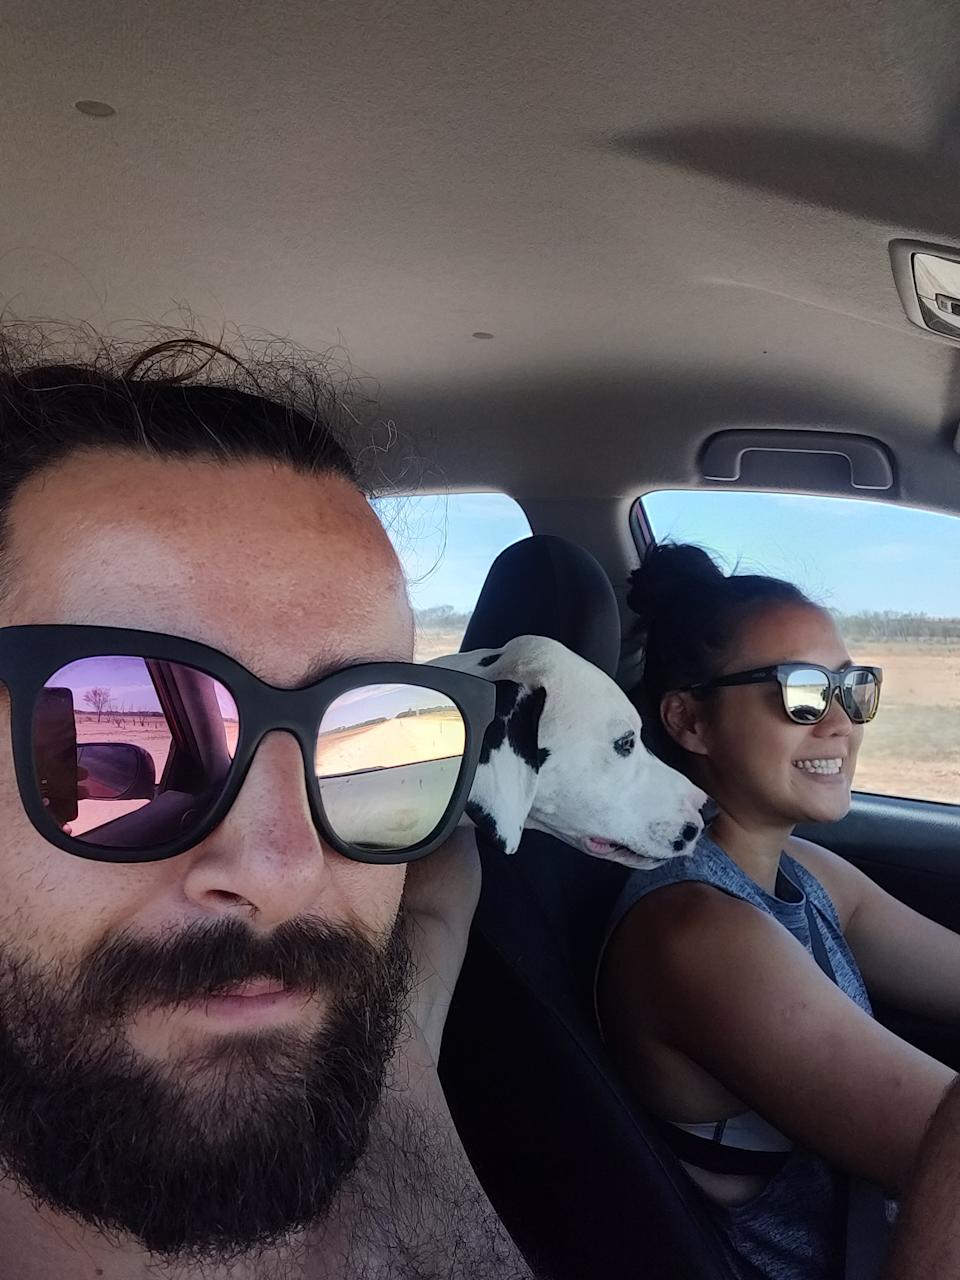 Jose, Nicky and their dog Loki became stranded on their journey from Cairns to Adelaide. Source: Royal Flying Doctor Service